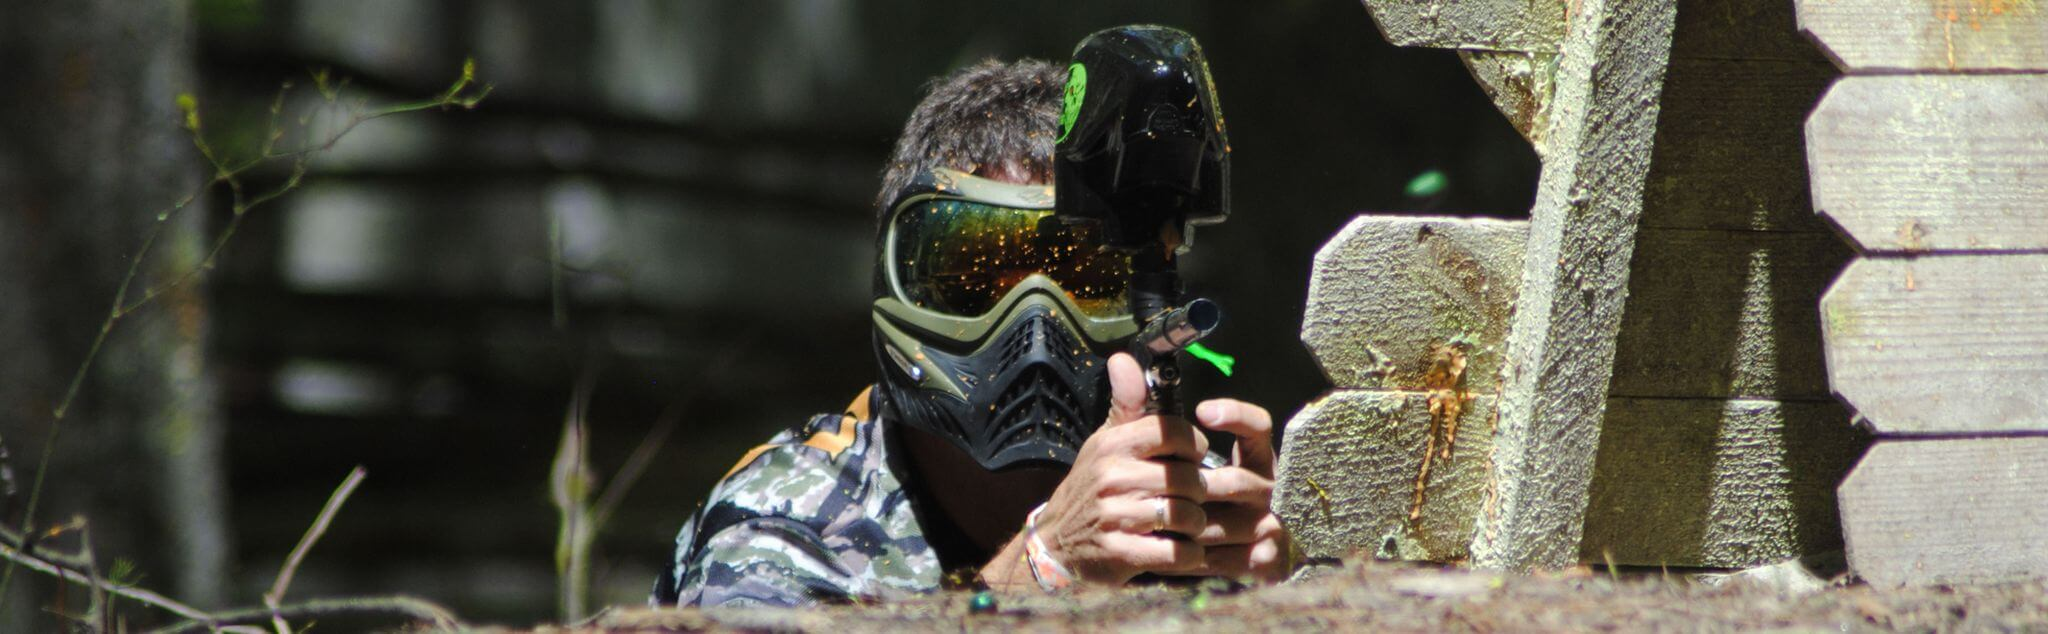 Paintball in Morelos